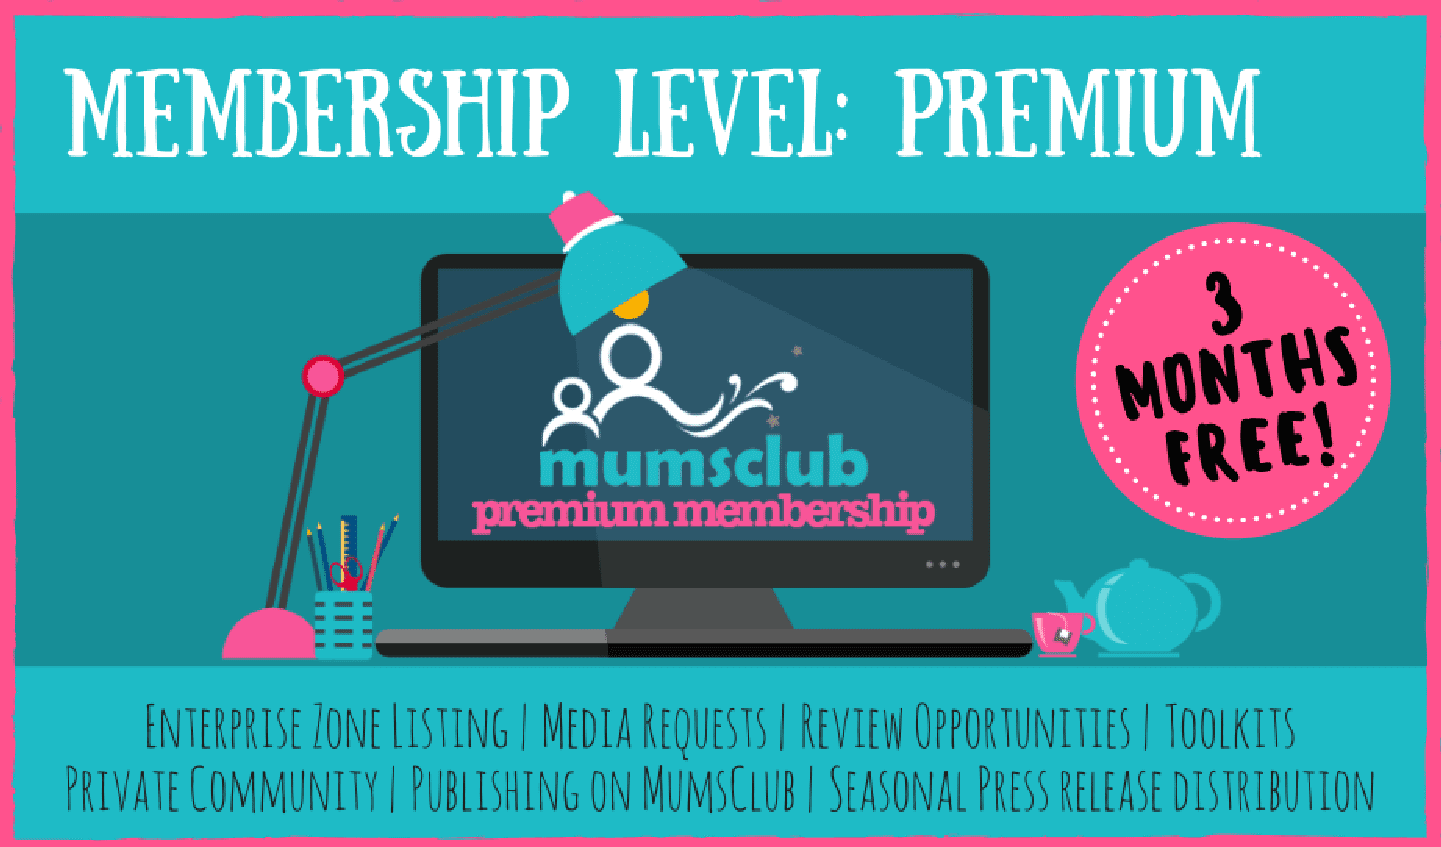 Premium Membership pay annually